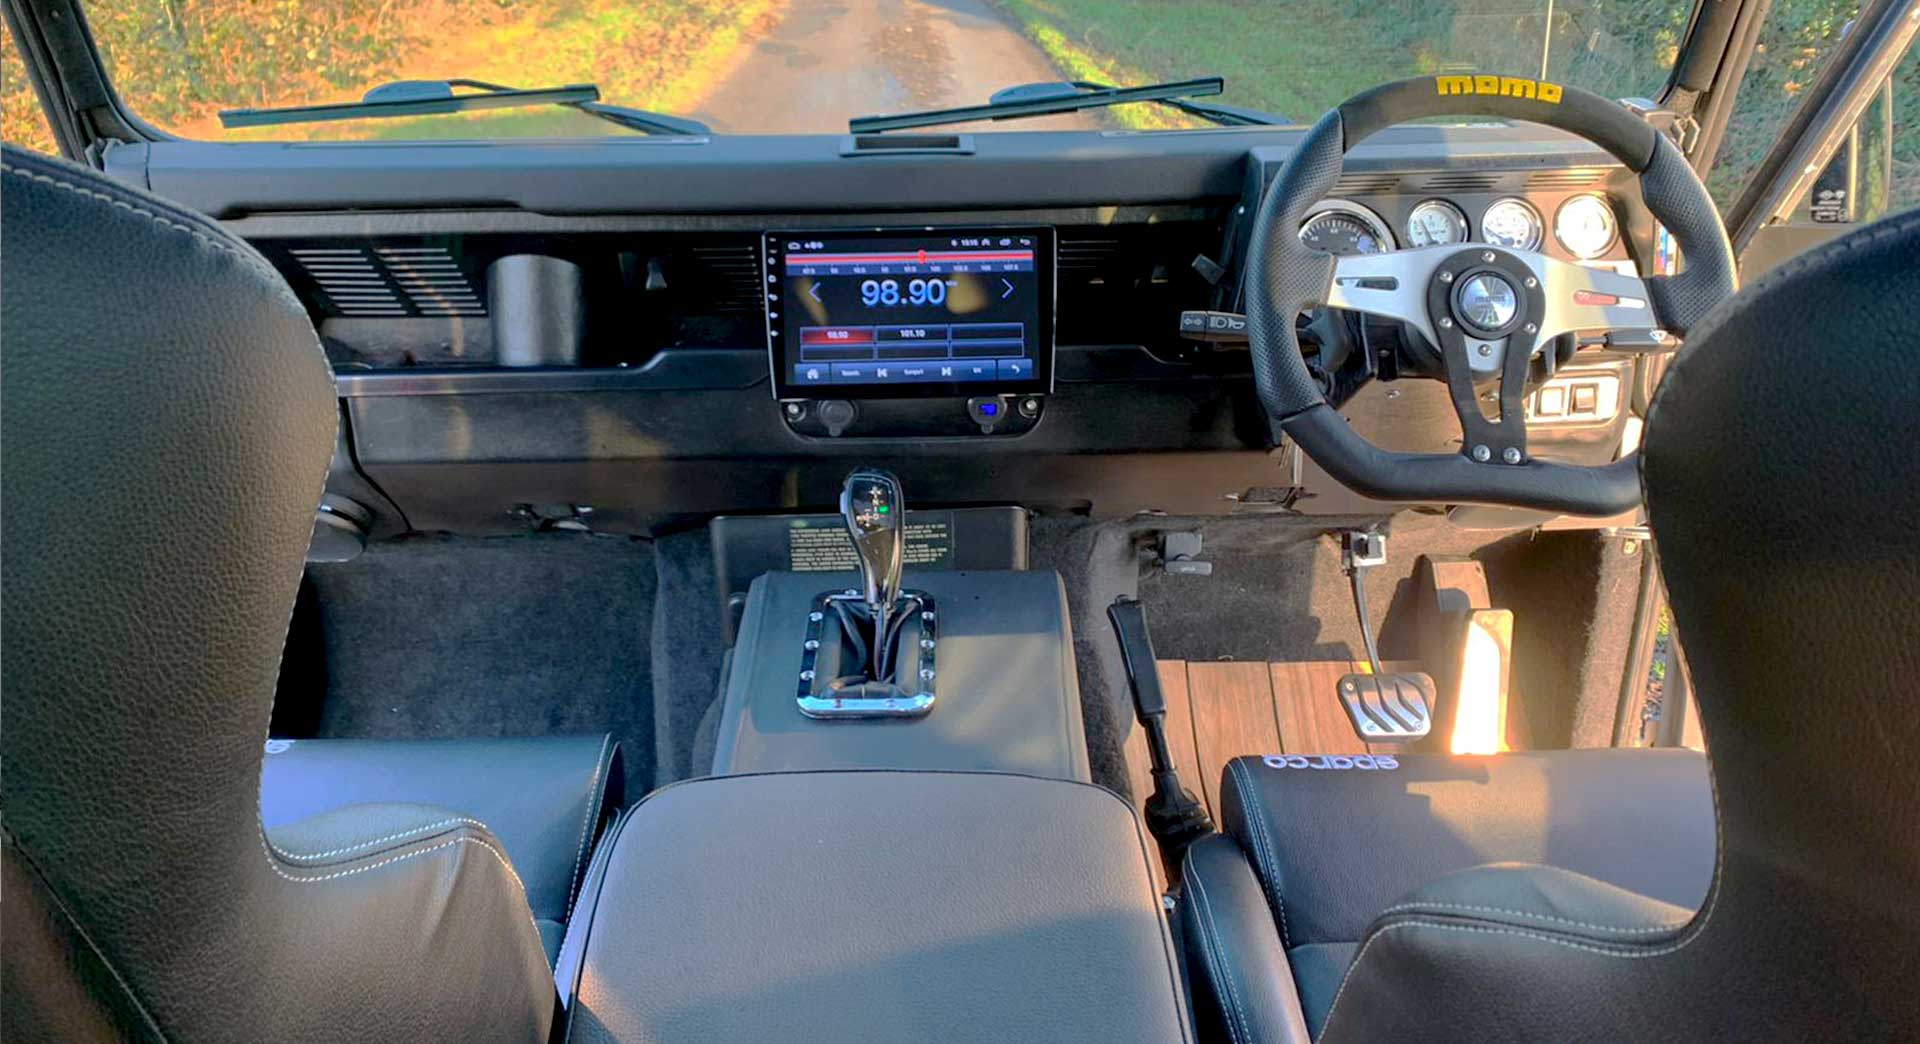 Land Rover Defender with BMW engine conversion